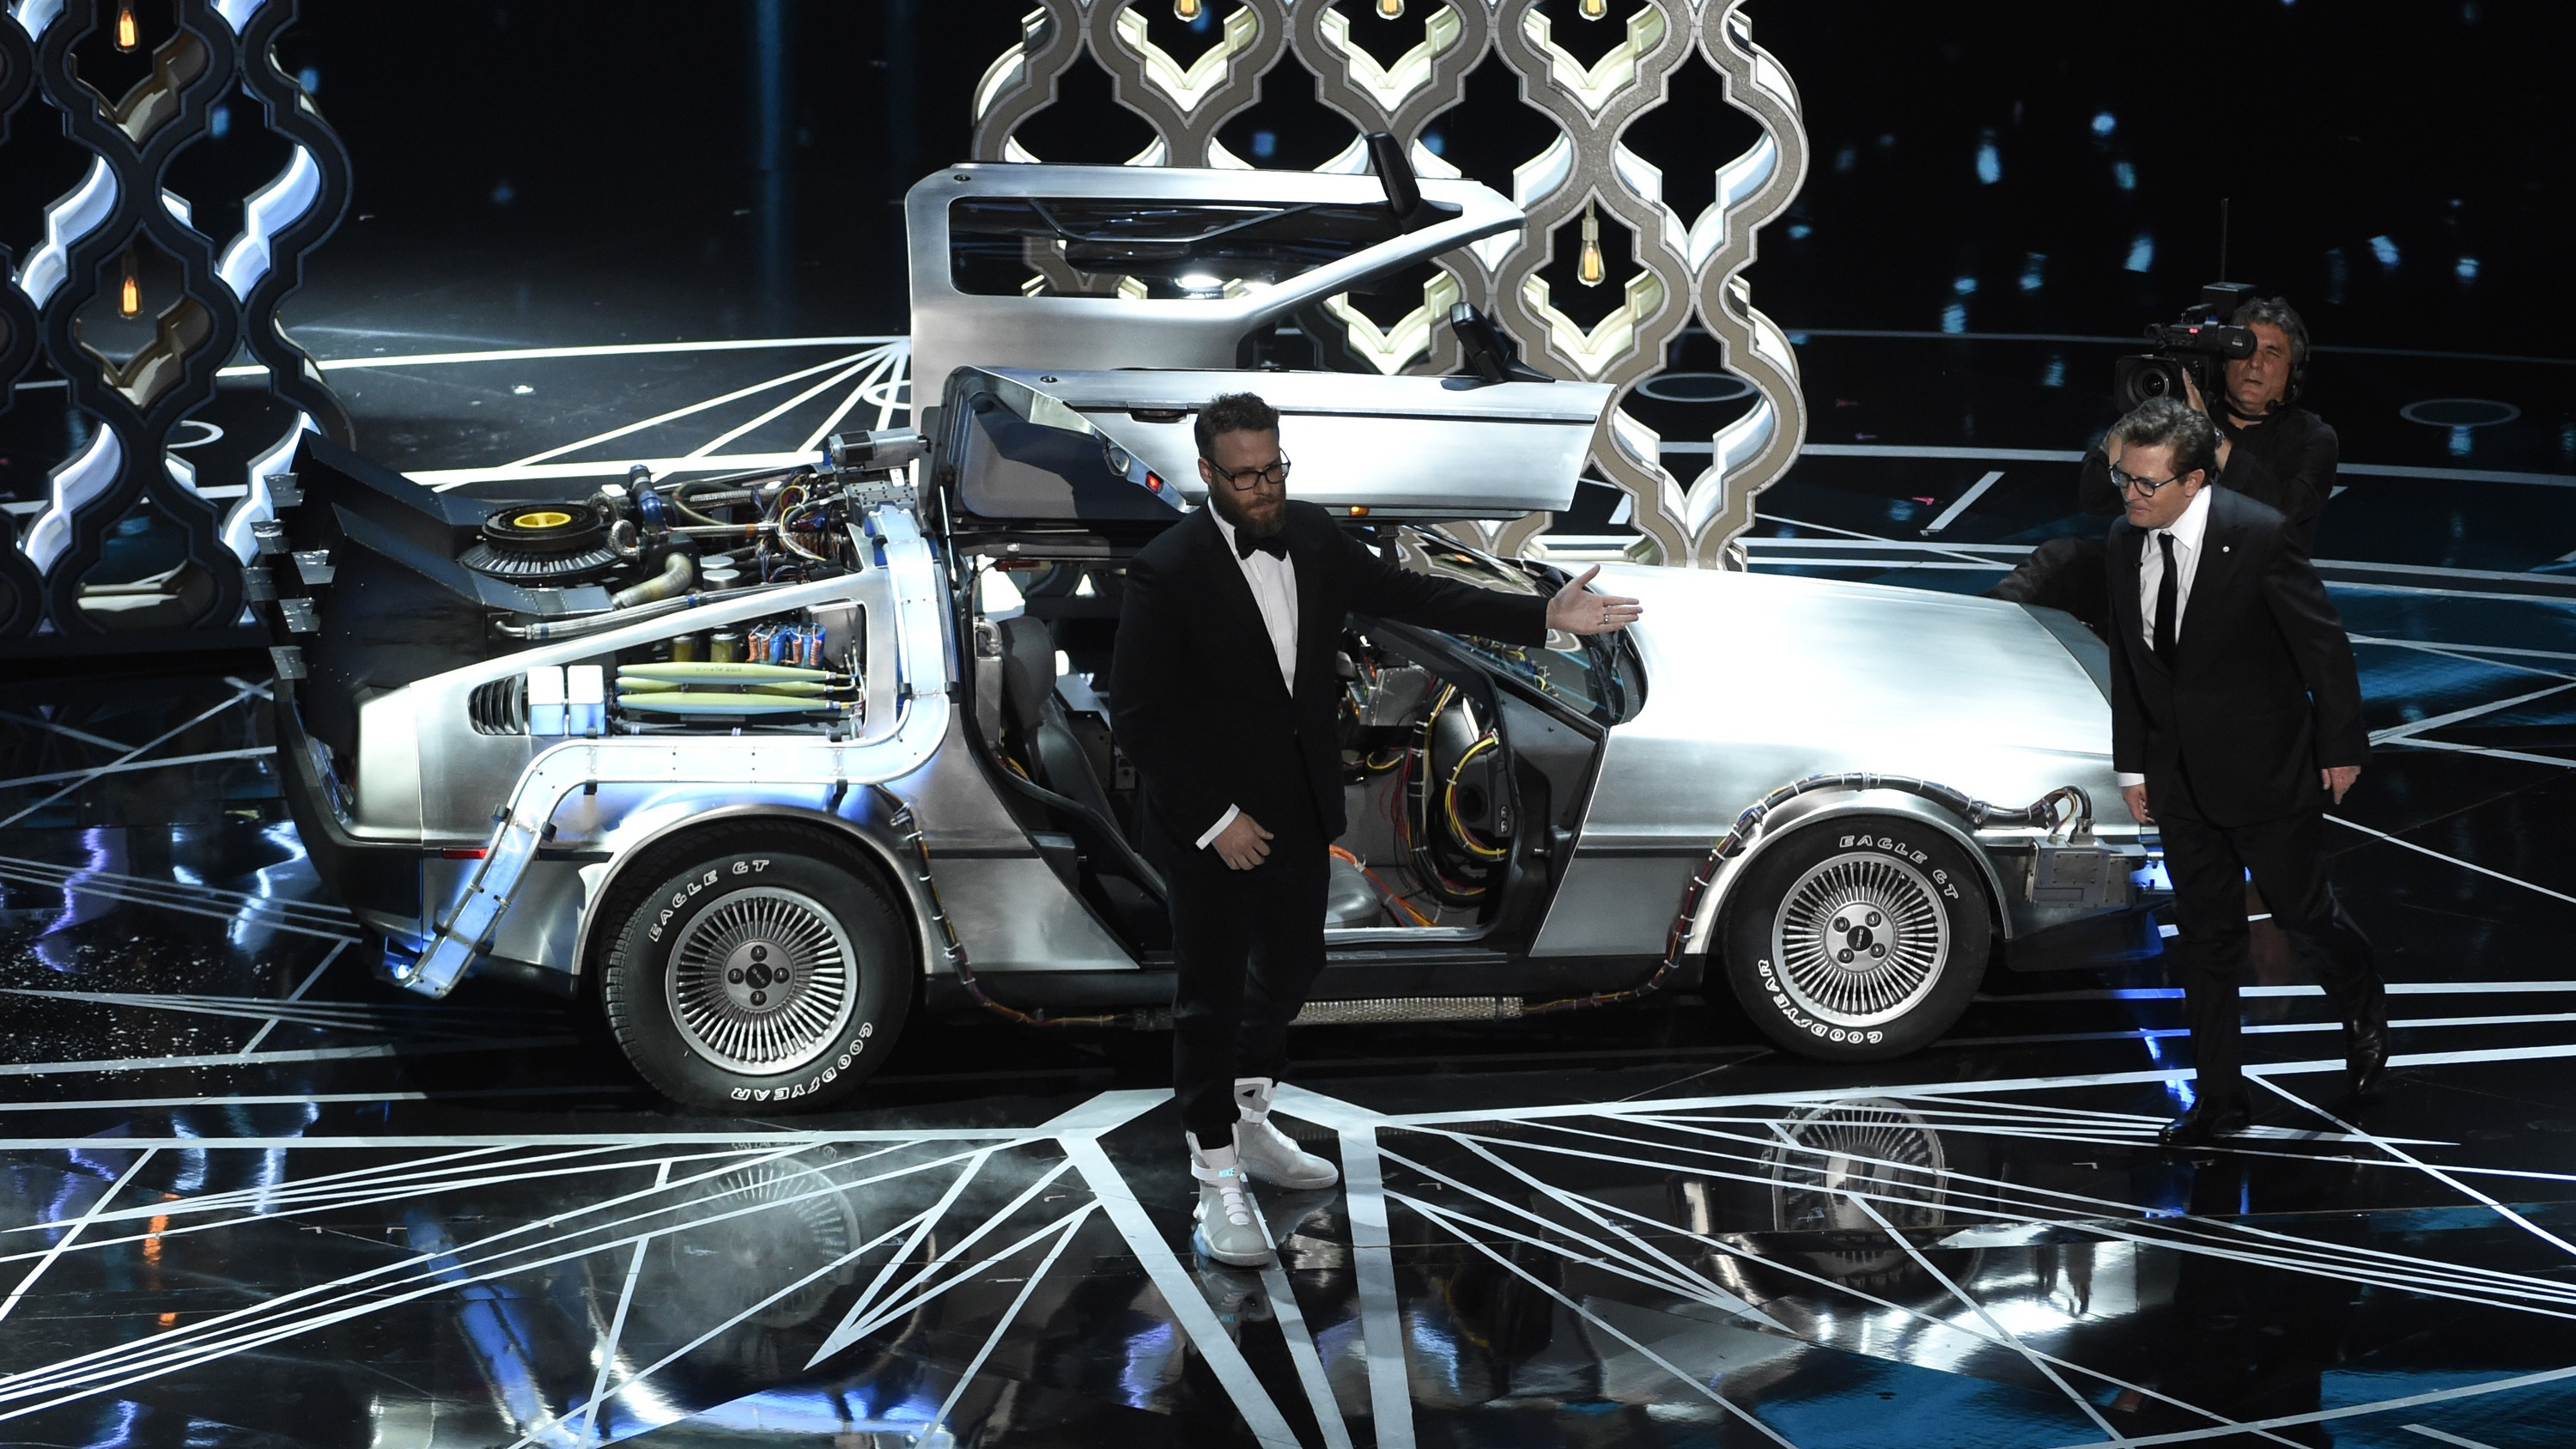 Seth Rogen, left, and Michael J. Fox step out of a DeLorean onstage at the Oscars on Sunday, Feb. 26, 2017, at the Dolby Theatre in Los Angeles. (Photo by Chris Pizzello/Invision/AP)